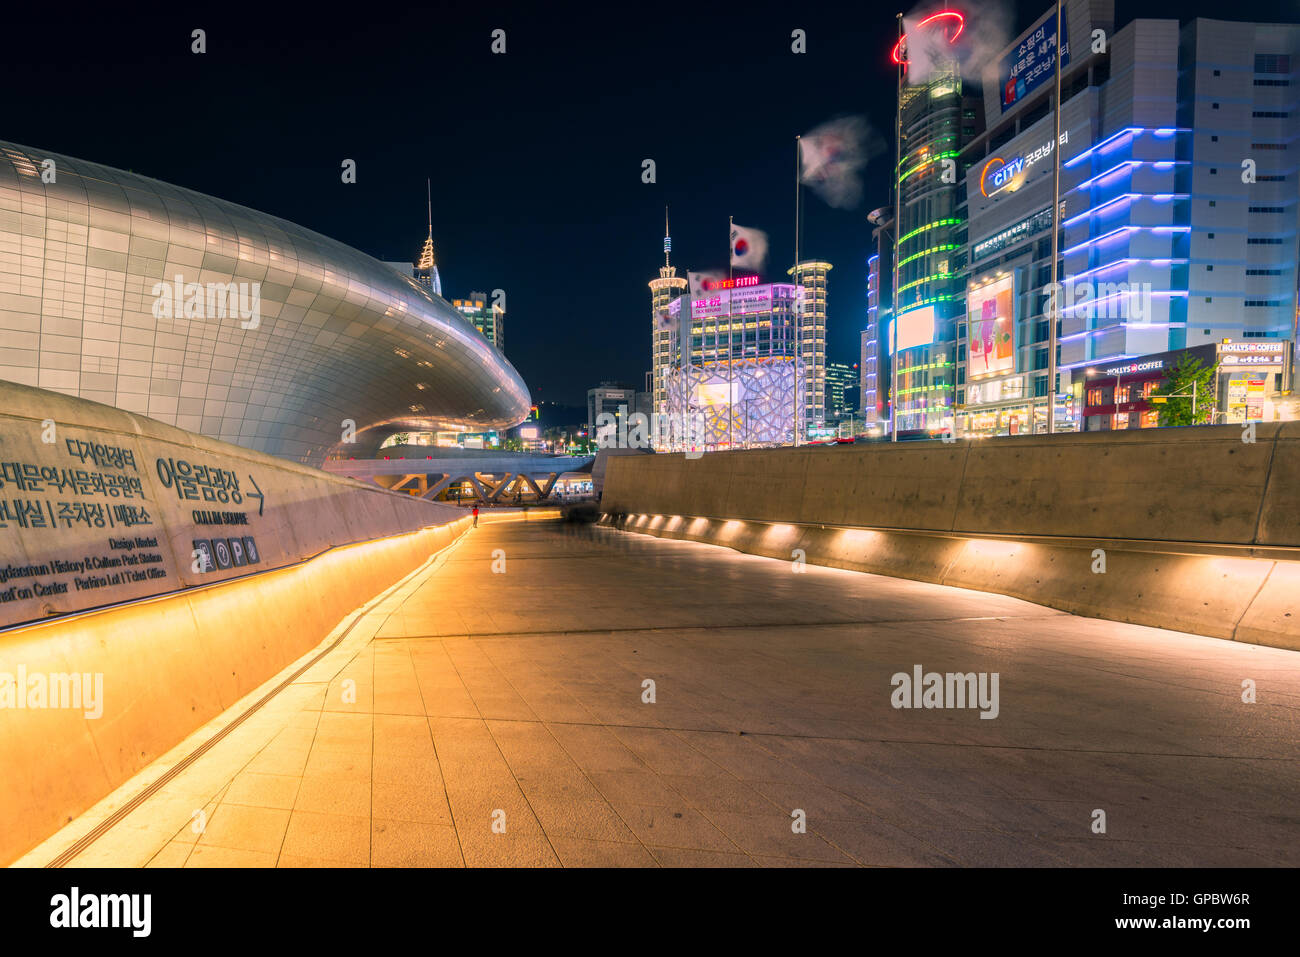 Dongdaemun Design Plaza,in seoul korea. - Stock Image